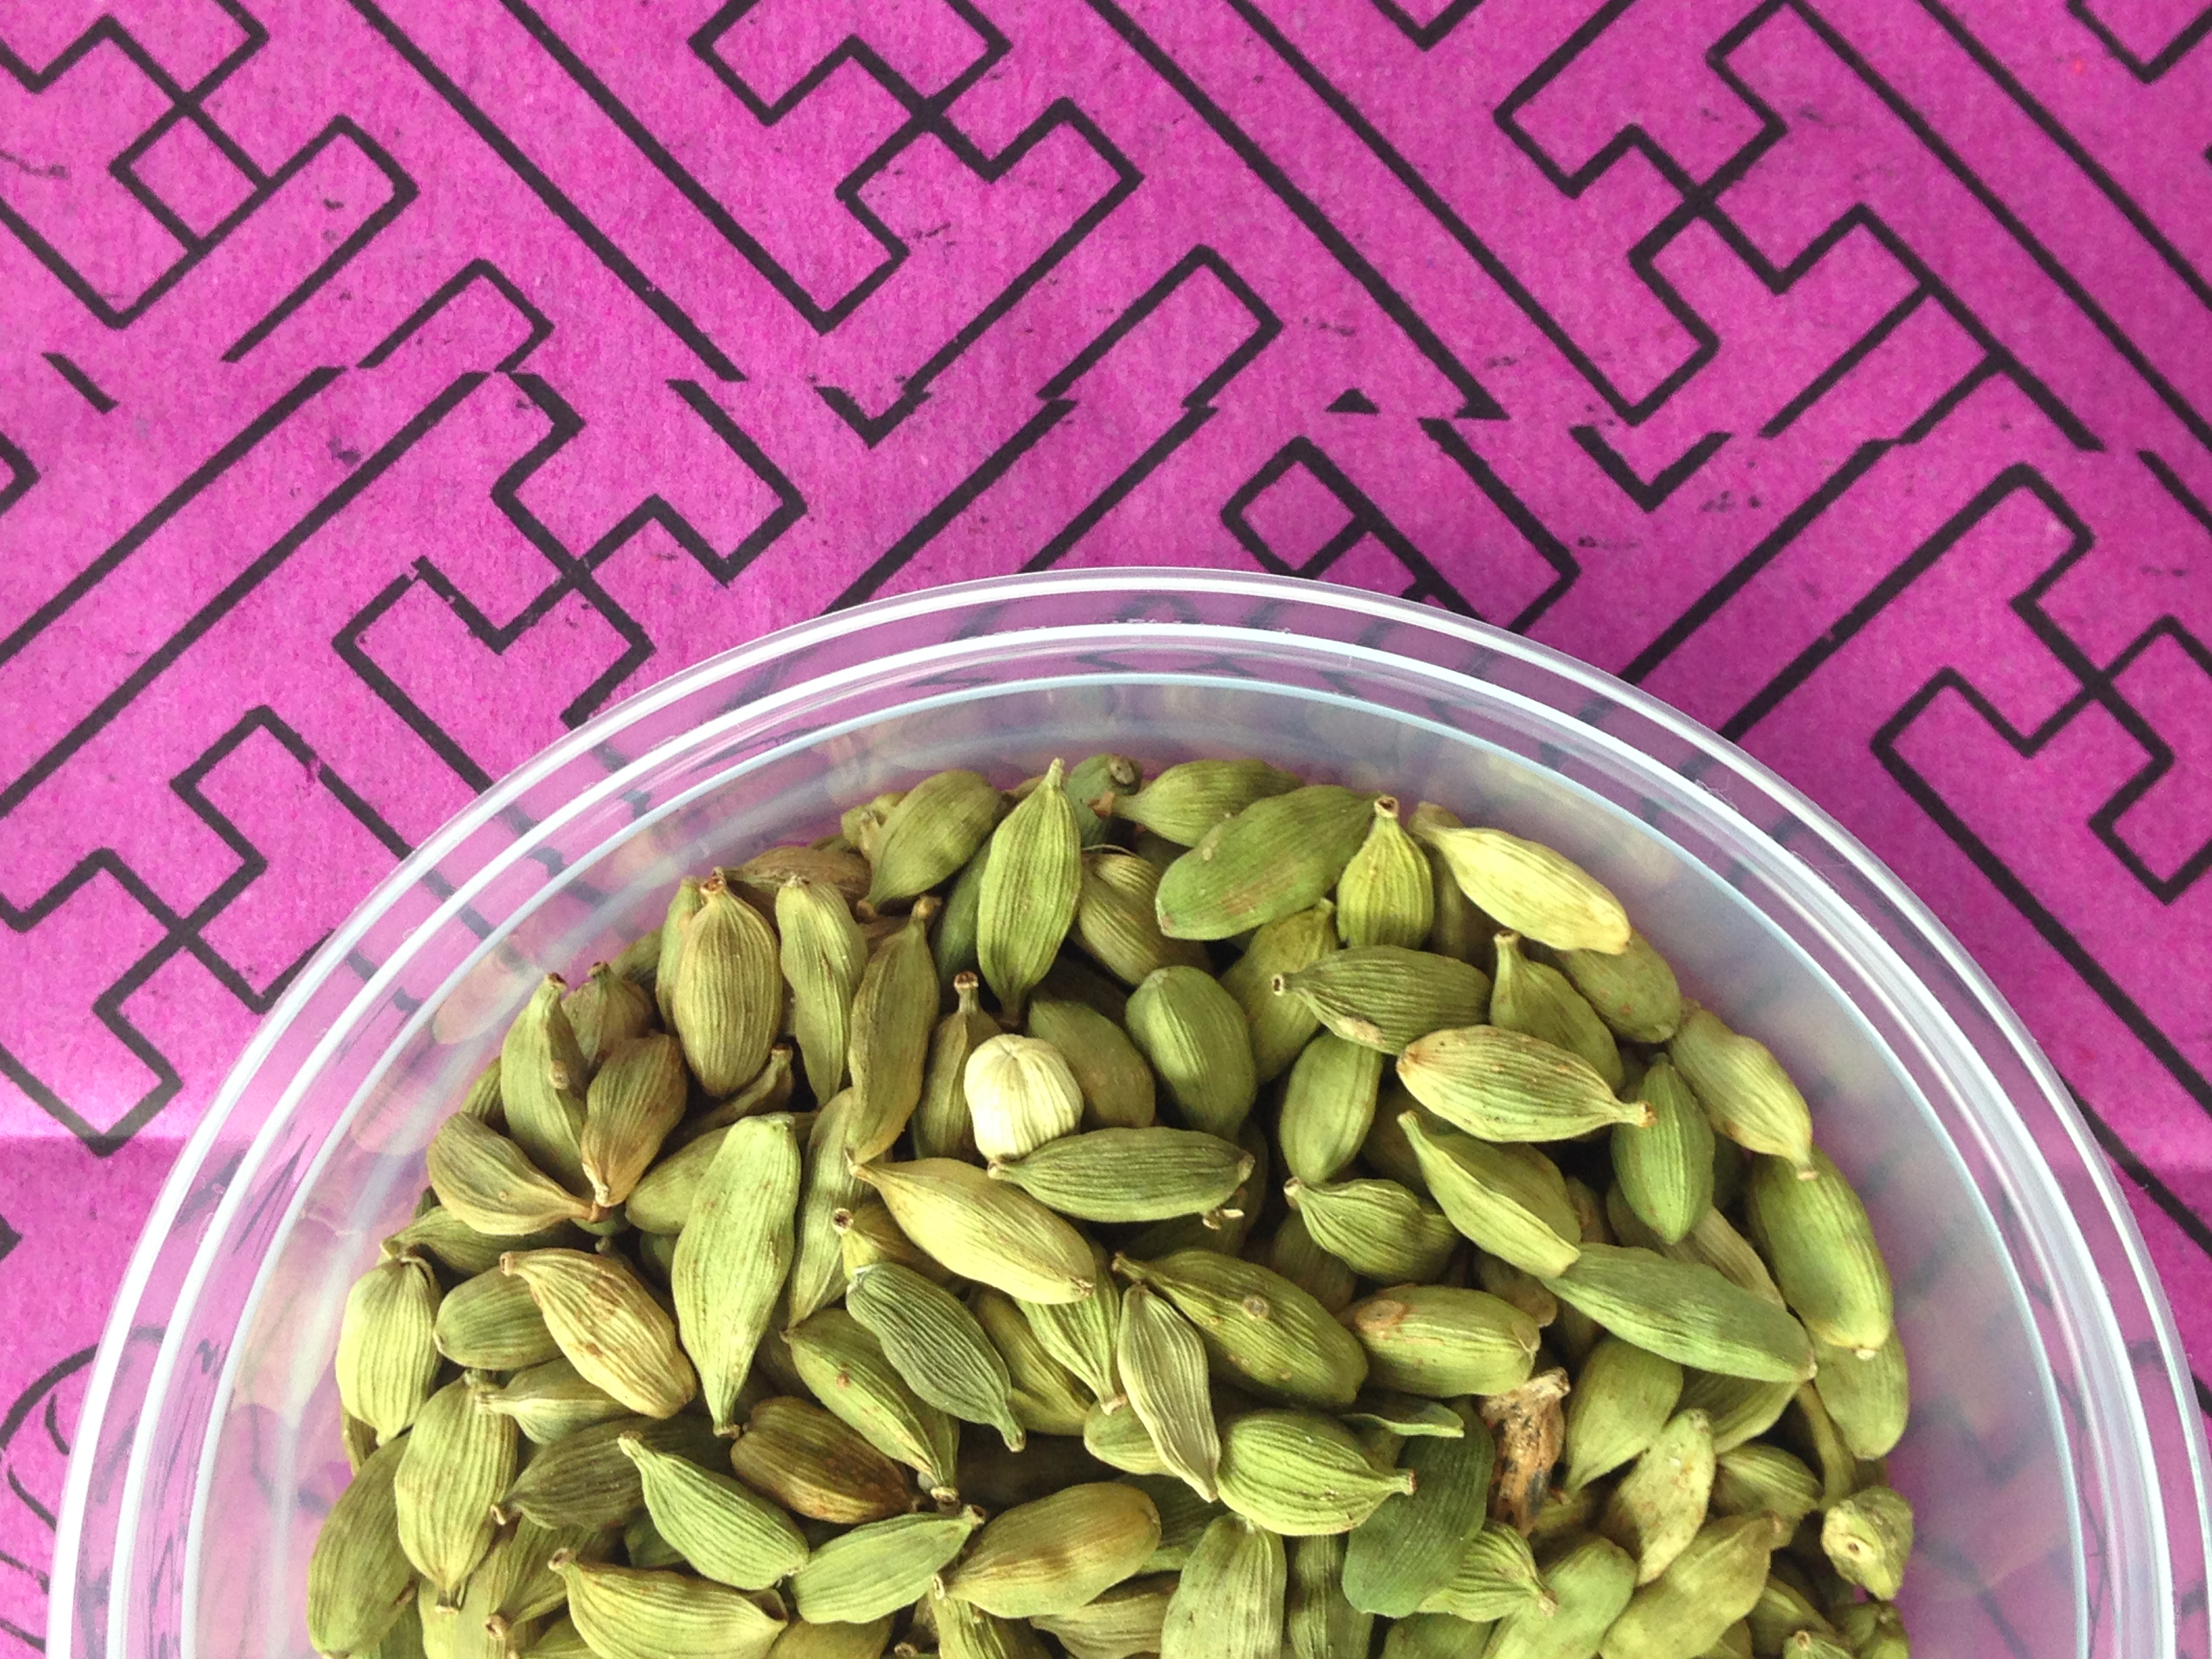 Cardamom, a spice used through out the film Photo Cred.: Roaming Hunger